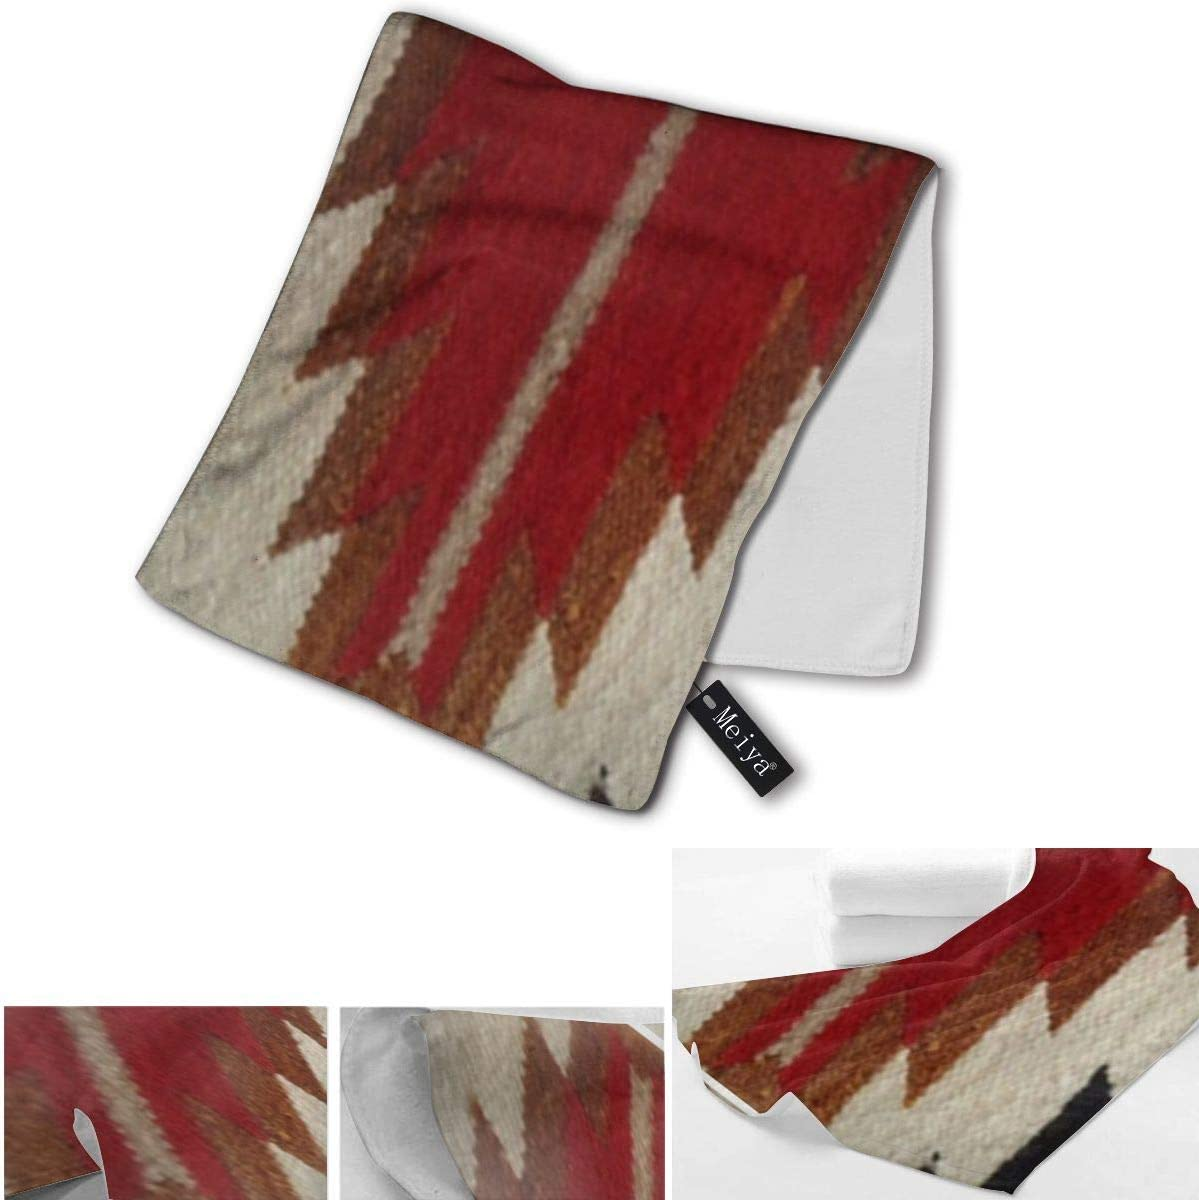 Yoate Co Tribal Native American Red Hue Print Soft Highly Absorbent Multipurpose Bathroom Towel for Hand,Face,Gym,Sports and Spa 11.8x27.5inches